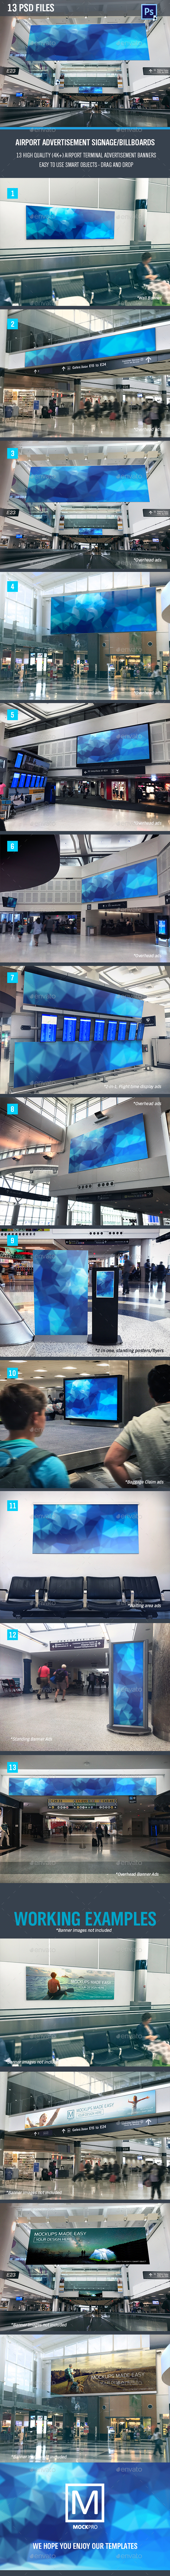 Airport Signage/Billboard Pack - 13 PSD files - Signage Print